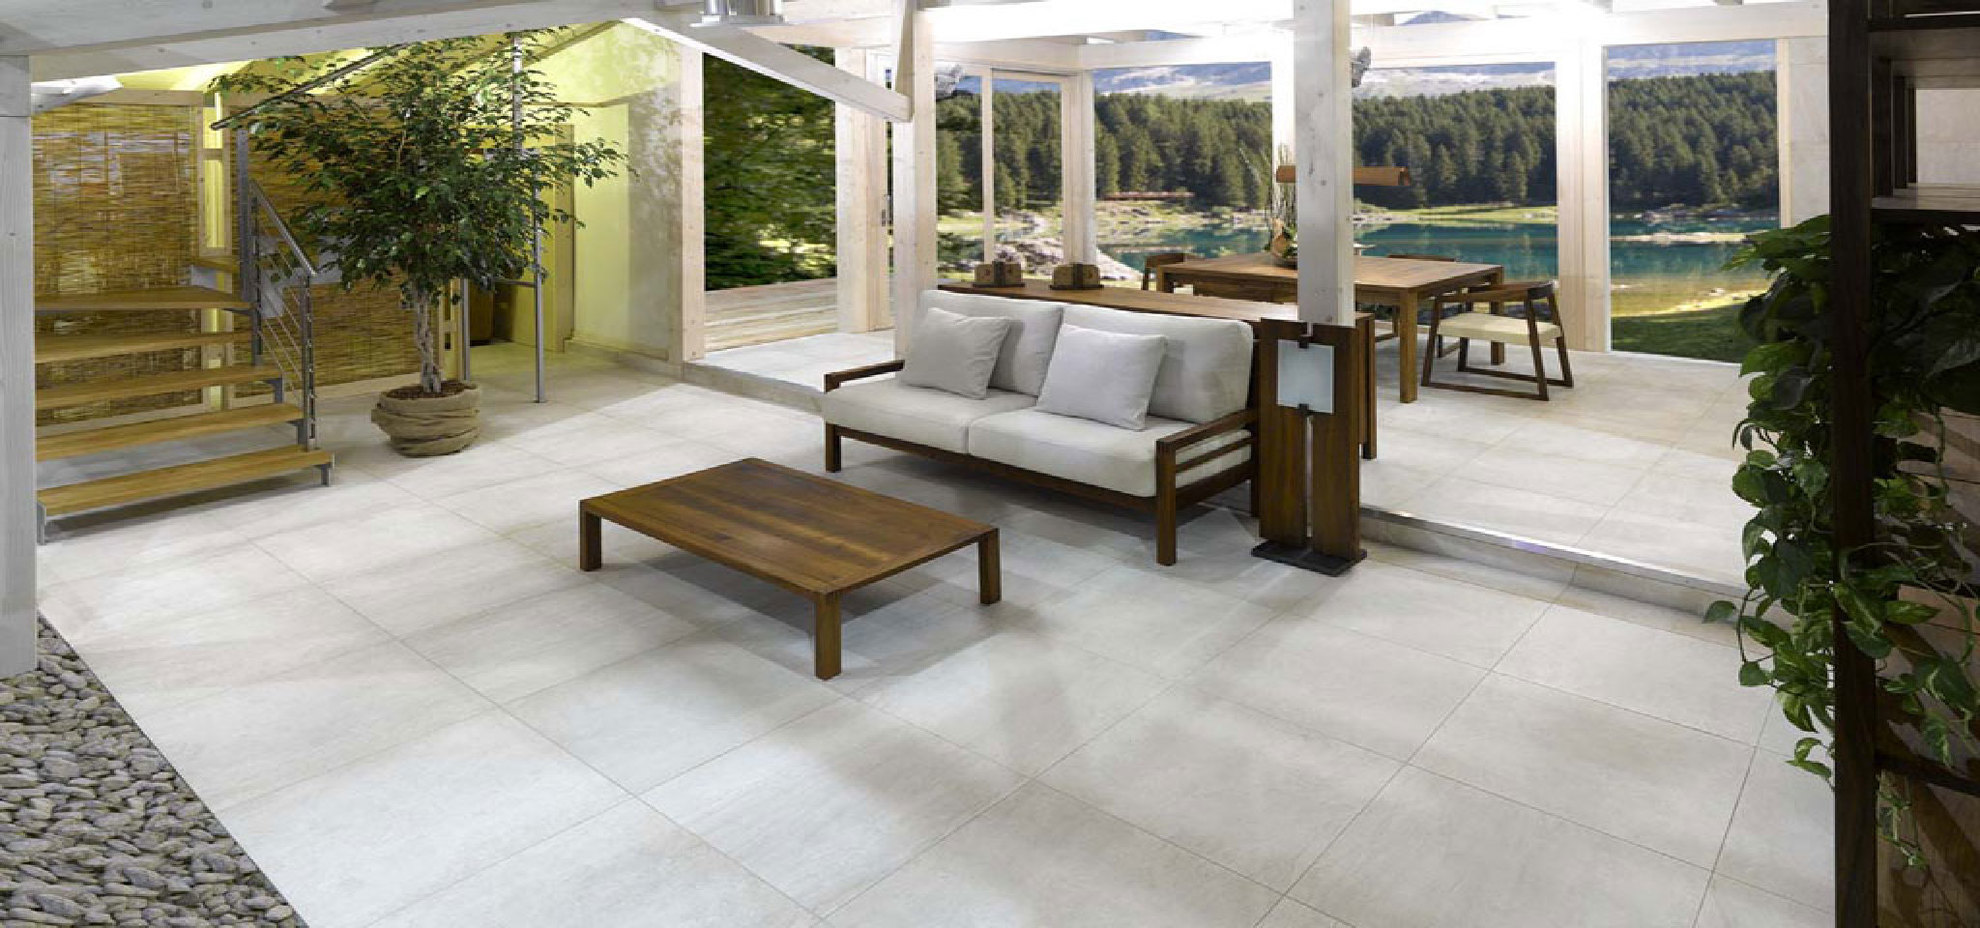 Porcelain Tiles For Outdoor Pavements: Solutions For Open